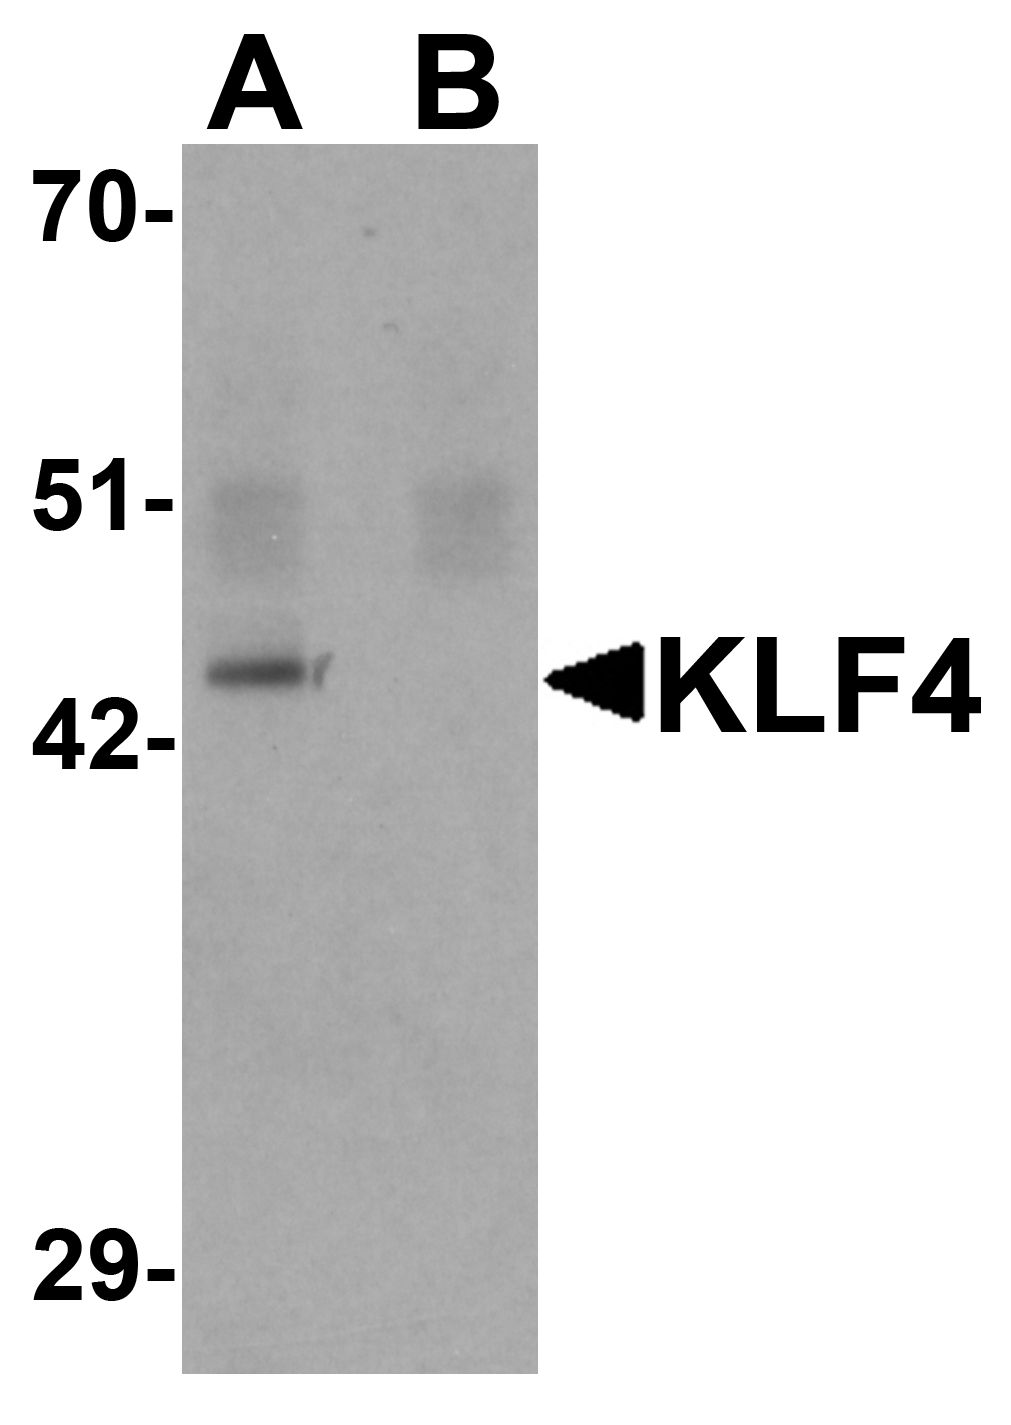 Western blot analysis of KLF4 in mouse liver tissue lysate with KLF4 antibody at 1 ug/ml in (A) the absence and (B) the presence of blocking peptide.